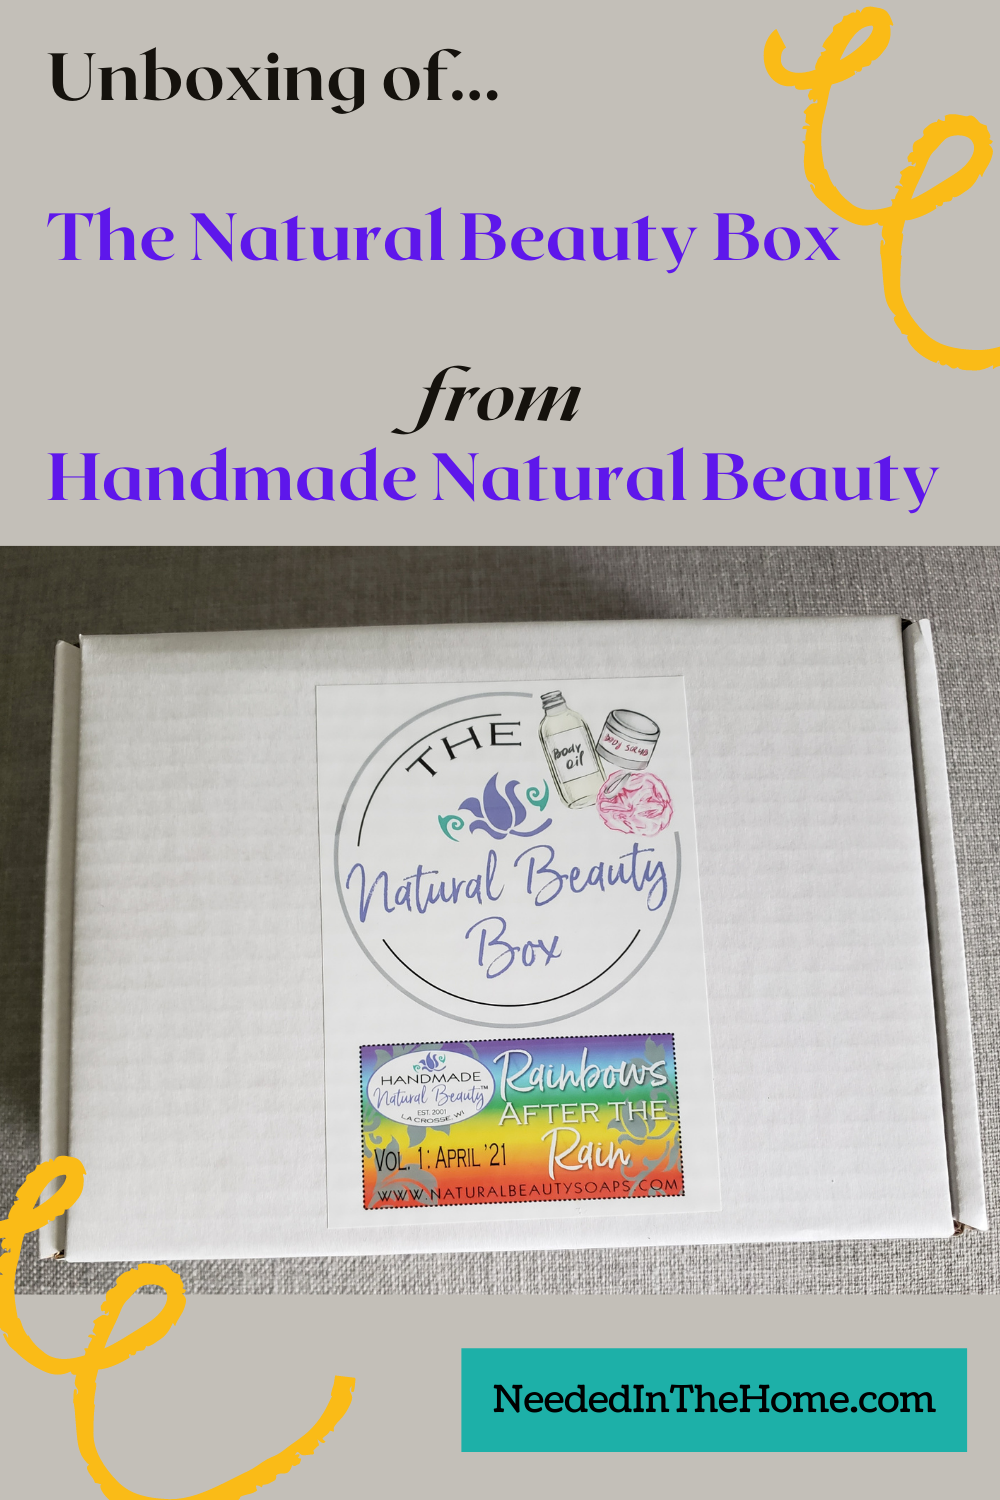 pinterest-pin-description Unboxing of The Natural Beauty Box from Handmade Natural Beauty neededinthehome